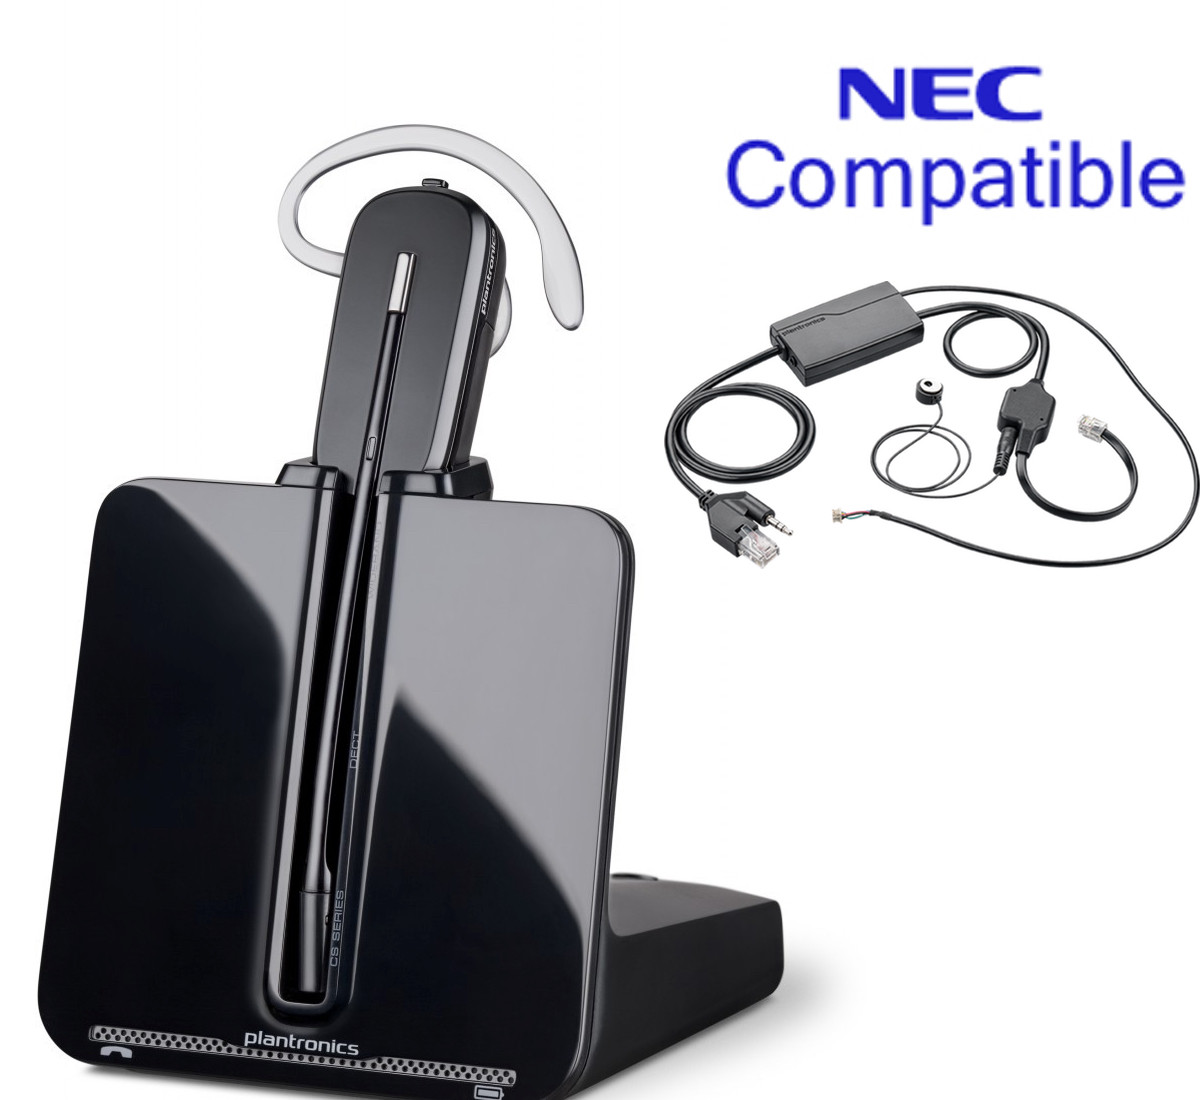 hight resolution of nec compatible plantronics cordless headset bundle cs540 ehs with electronic remote answerer nec phones